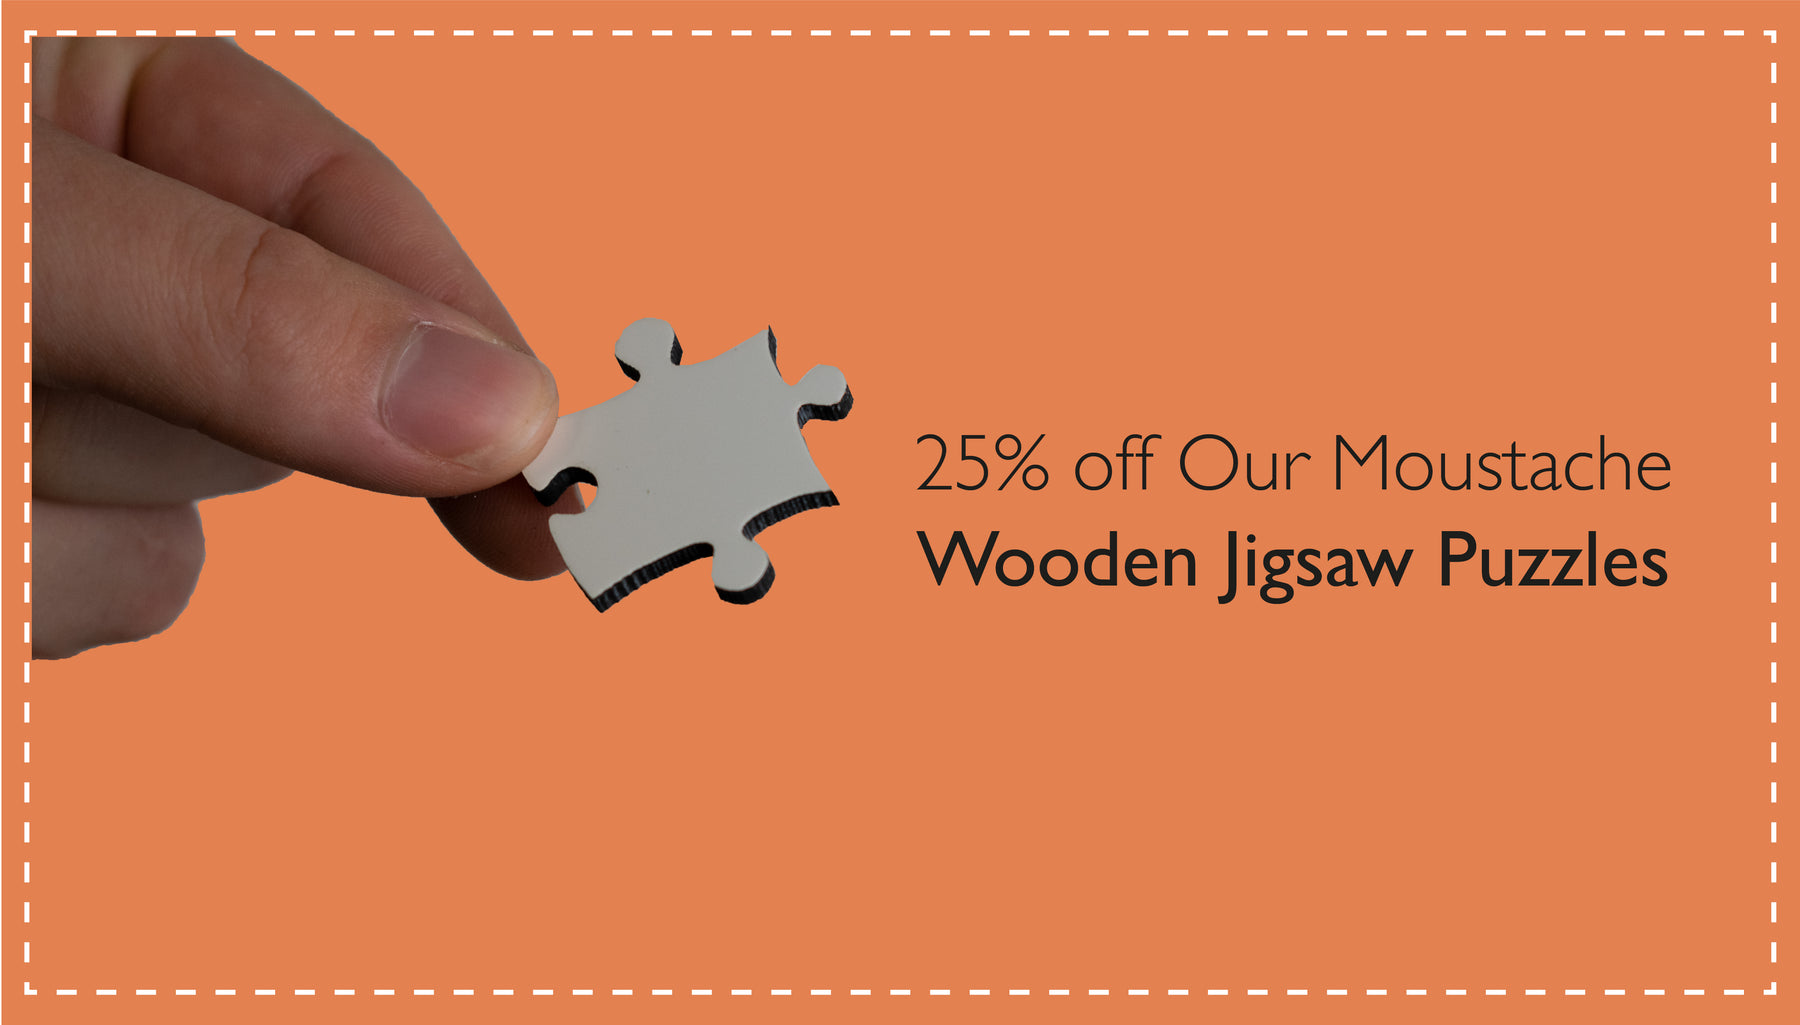 25% off Our Moustache Wooden Jigsaw Puzzles in support of Movember